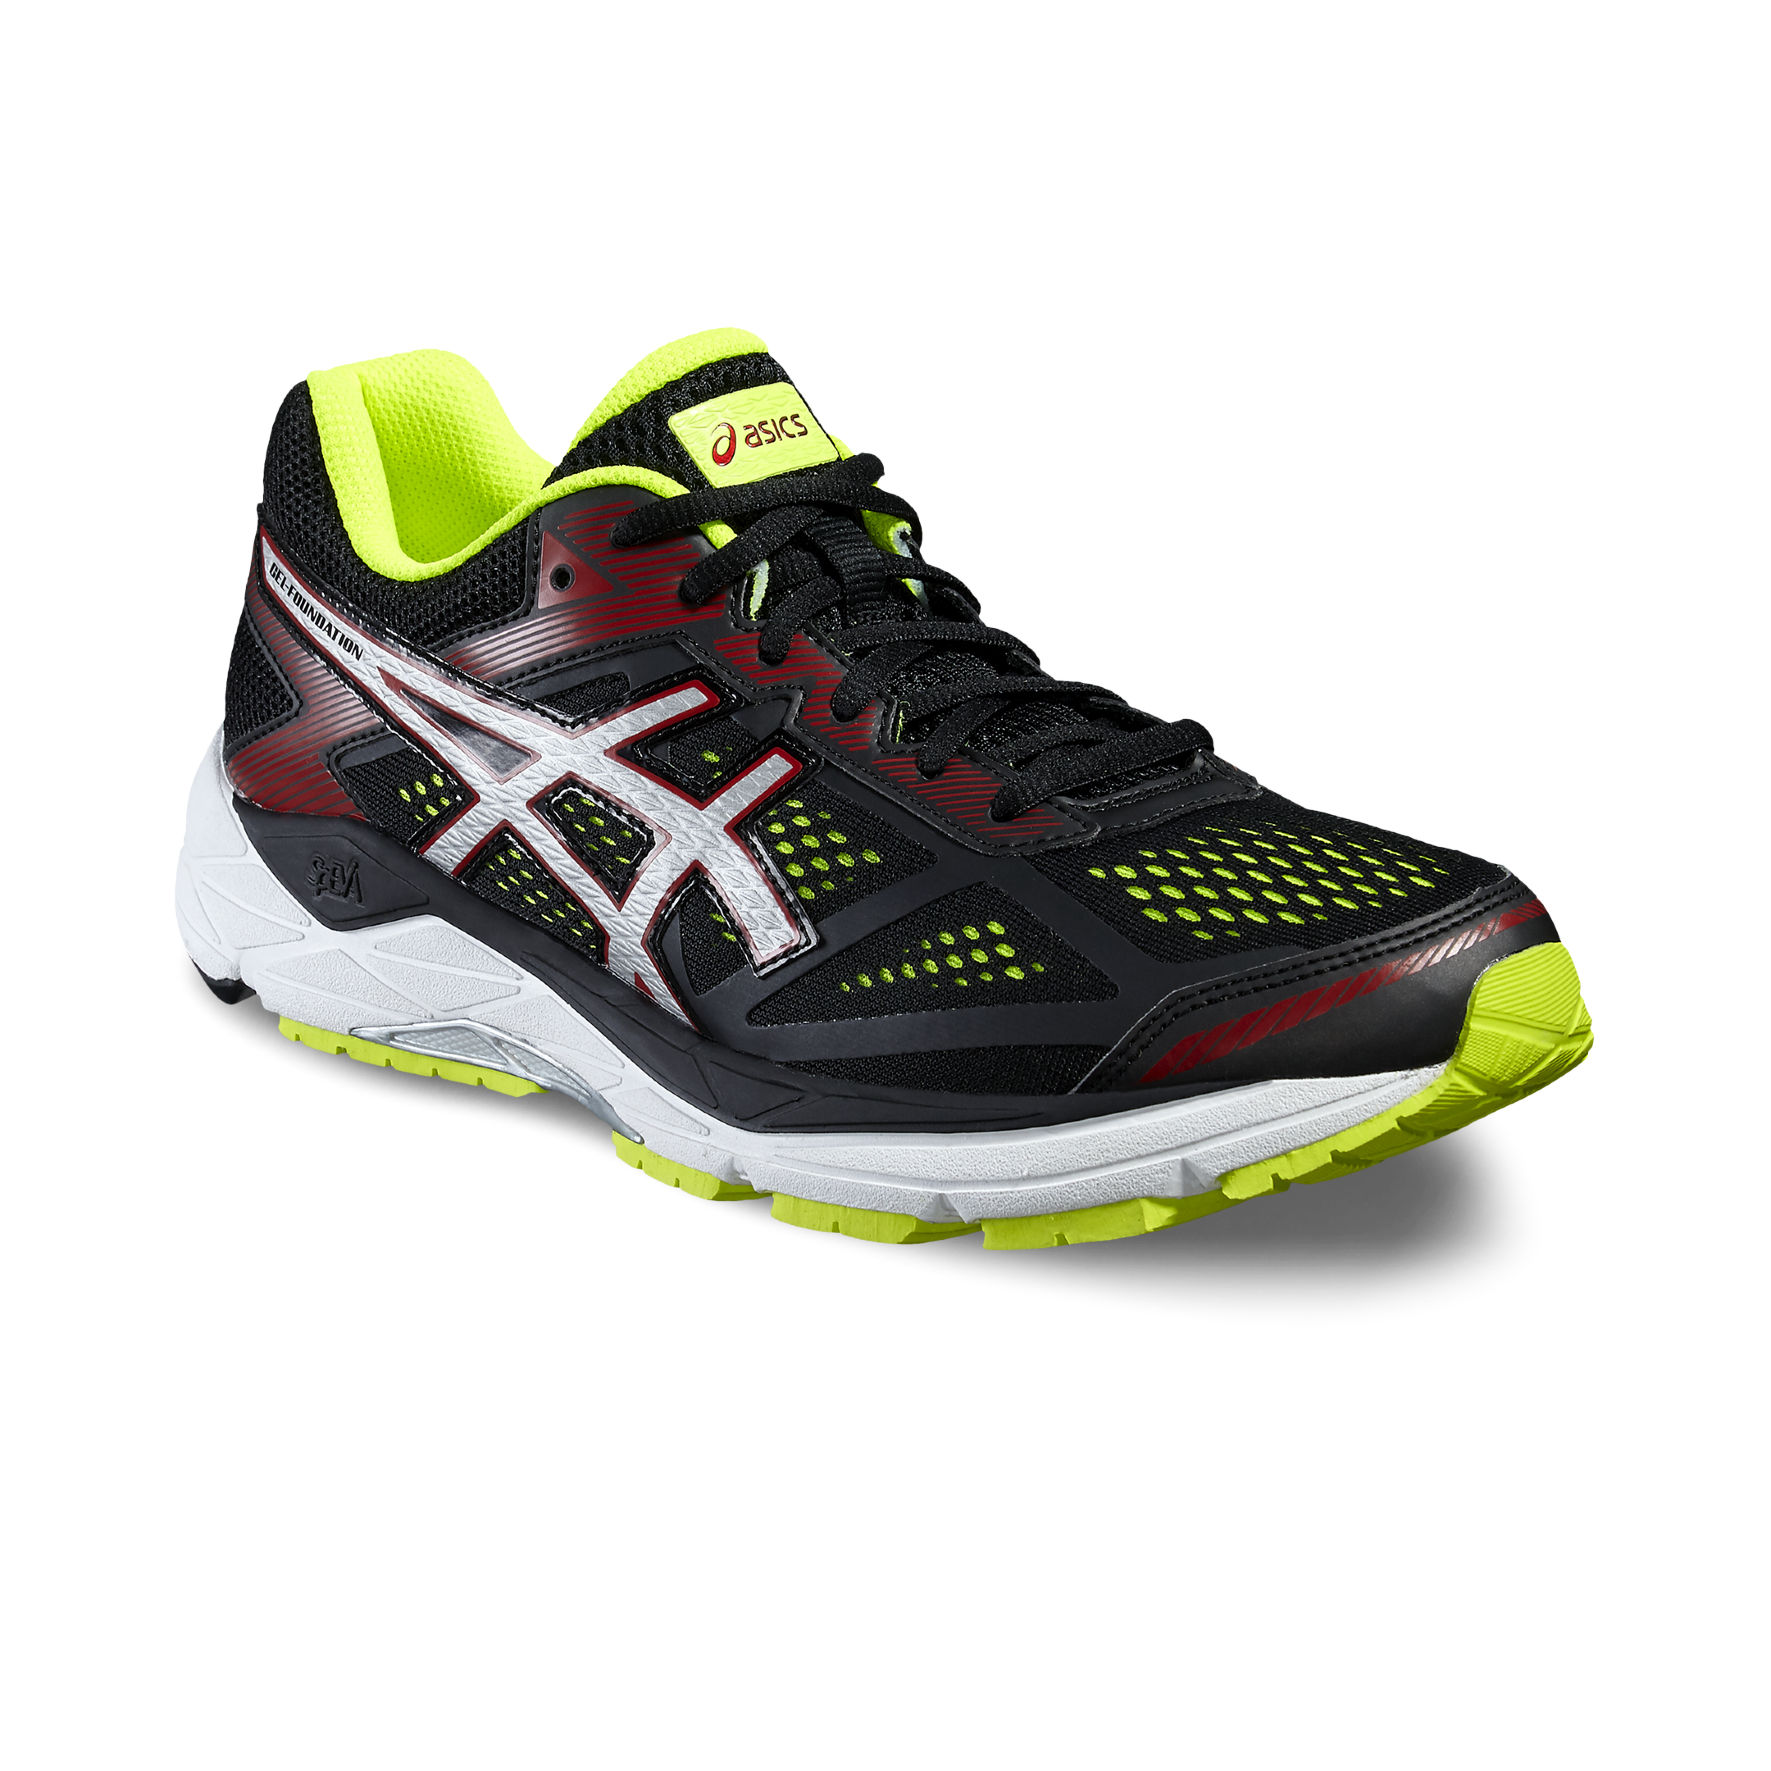 Asics Gel Foundation 12 2E in Schwarz Gelb